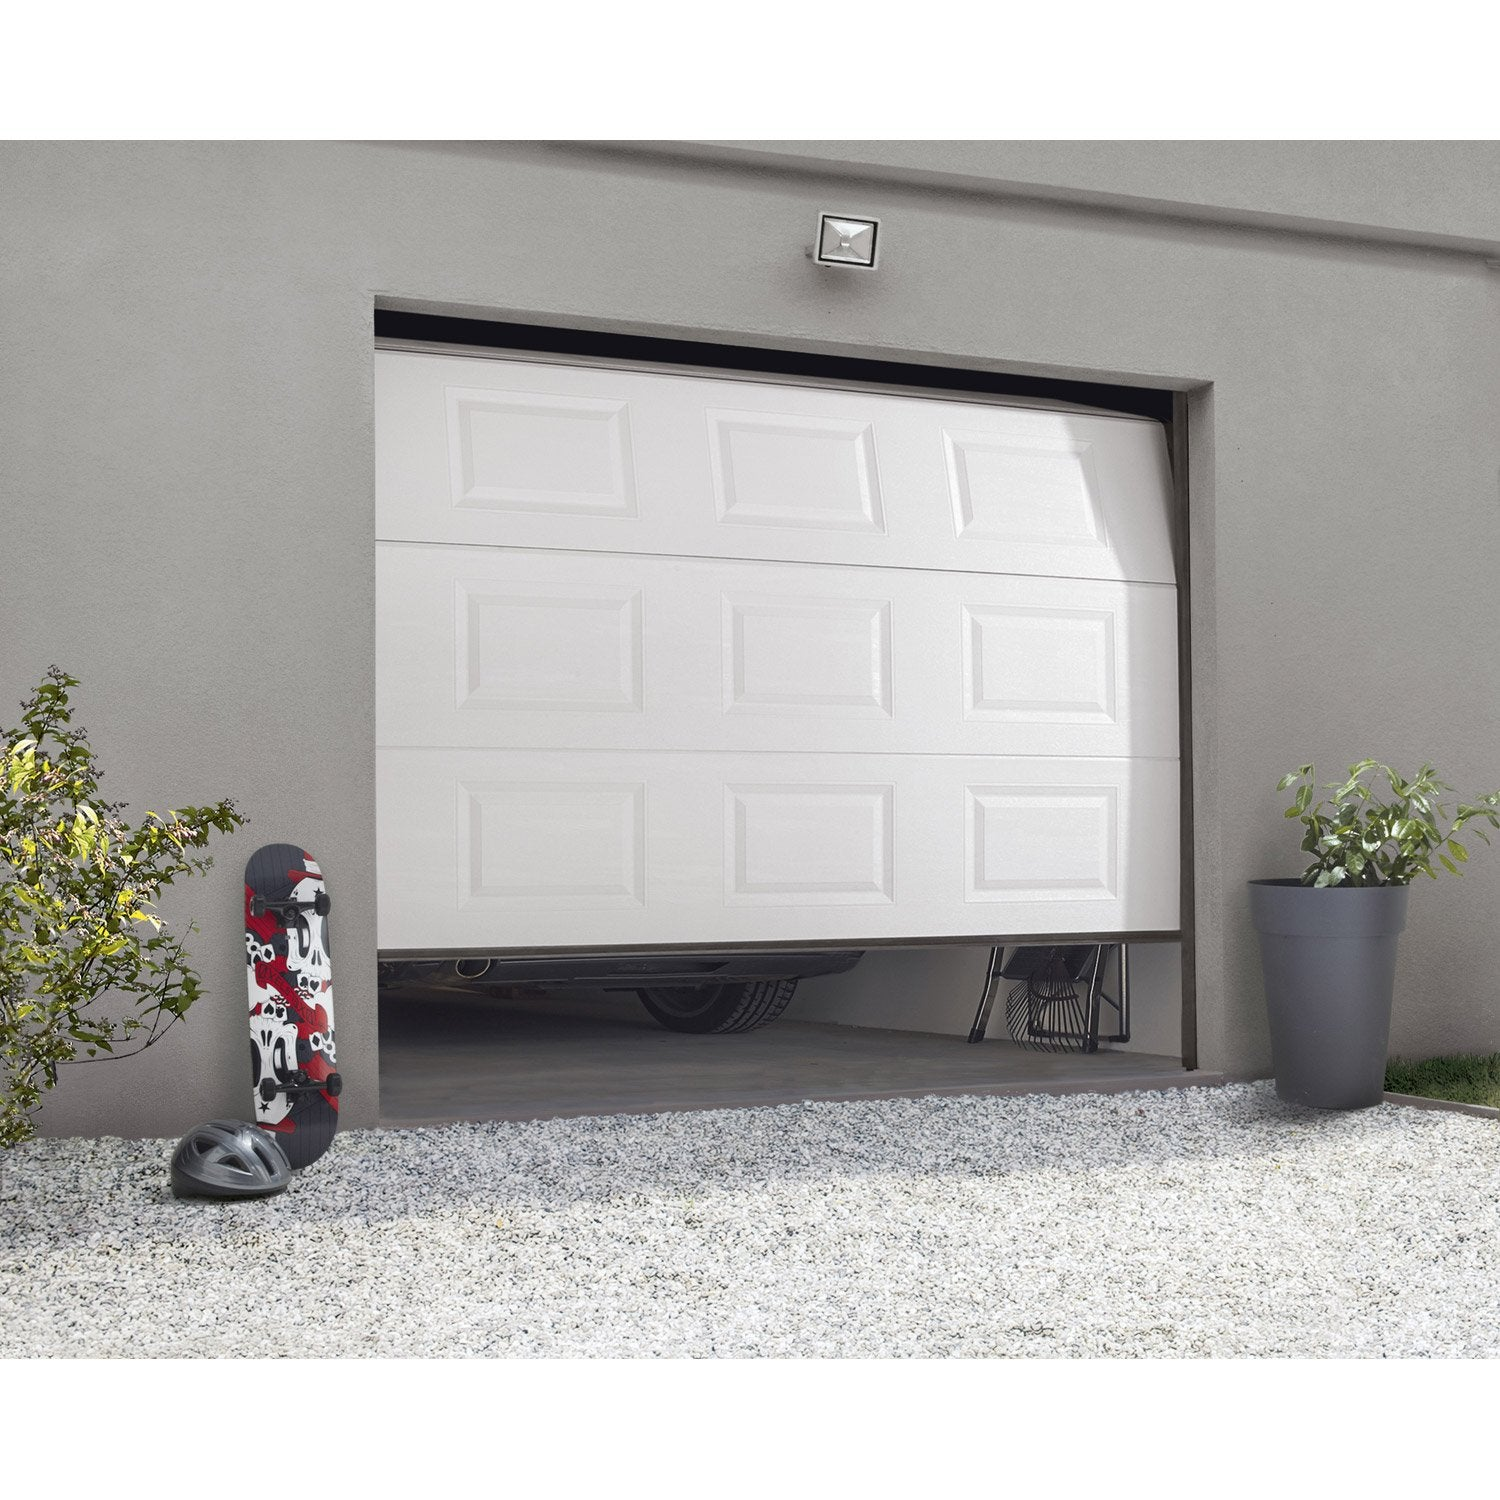 Porte de garage sectionnelle motoris e artens essentiel h - Leroy merlin porte de garage sectionnelle ...